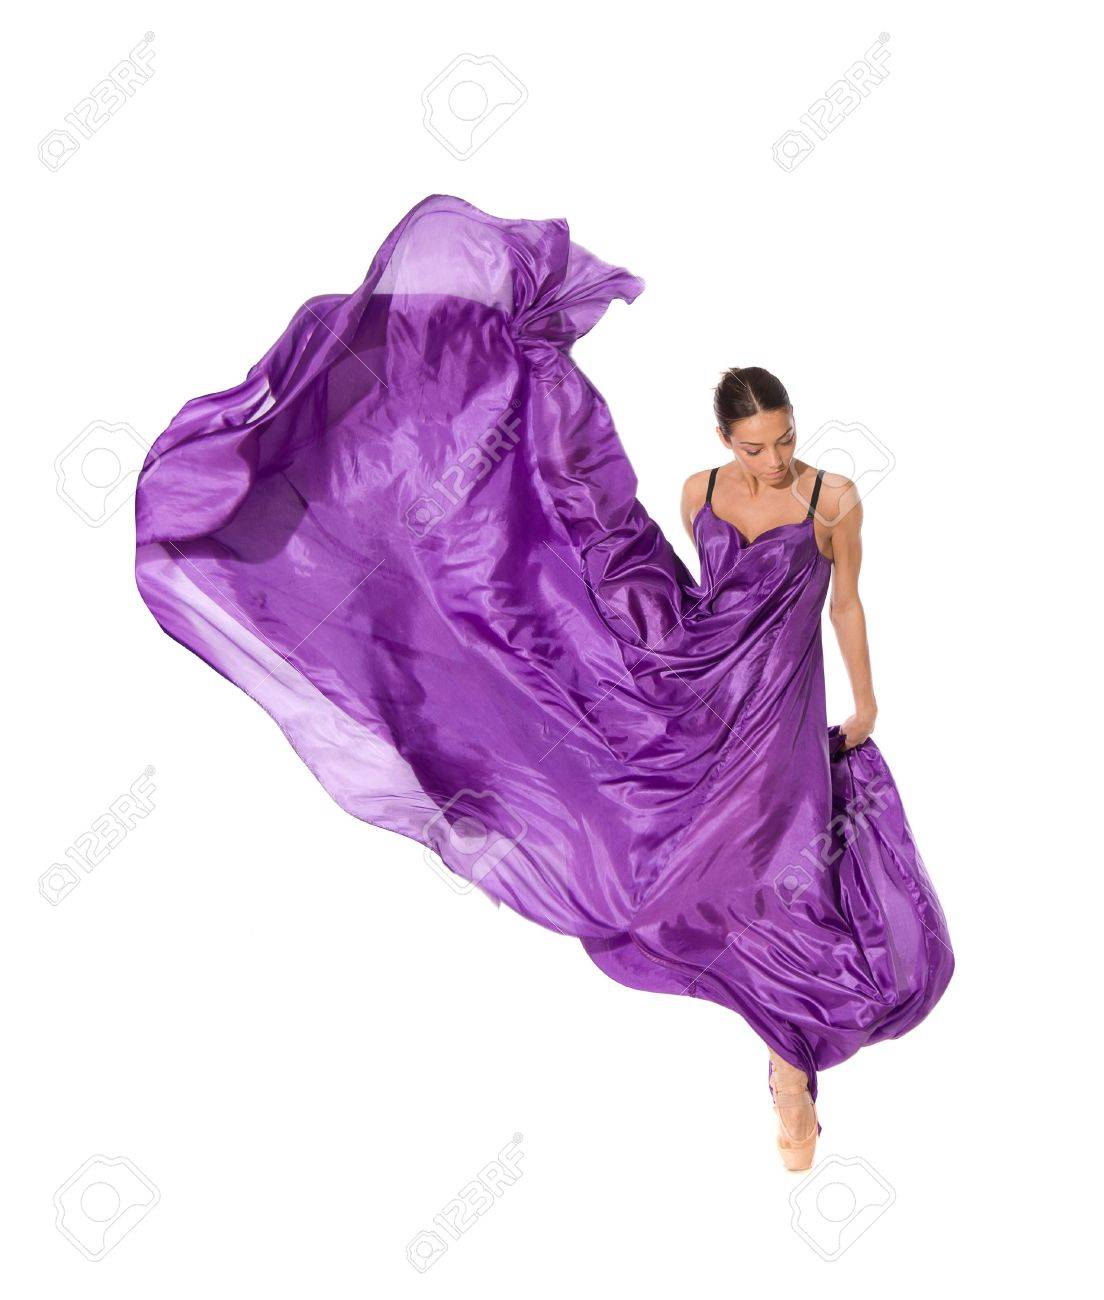 Stock Photo Ballet Dancer in